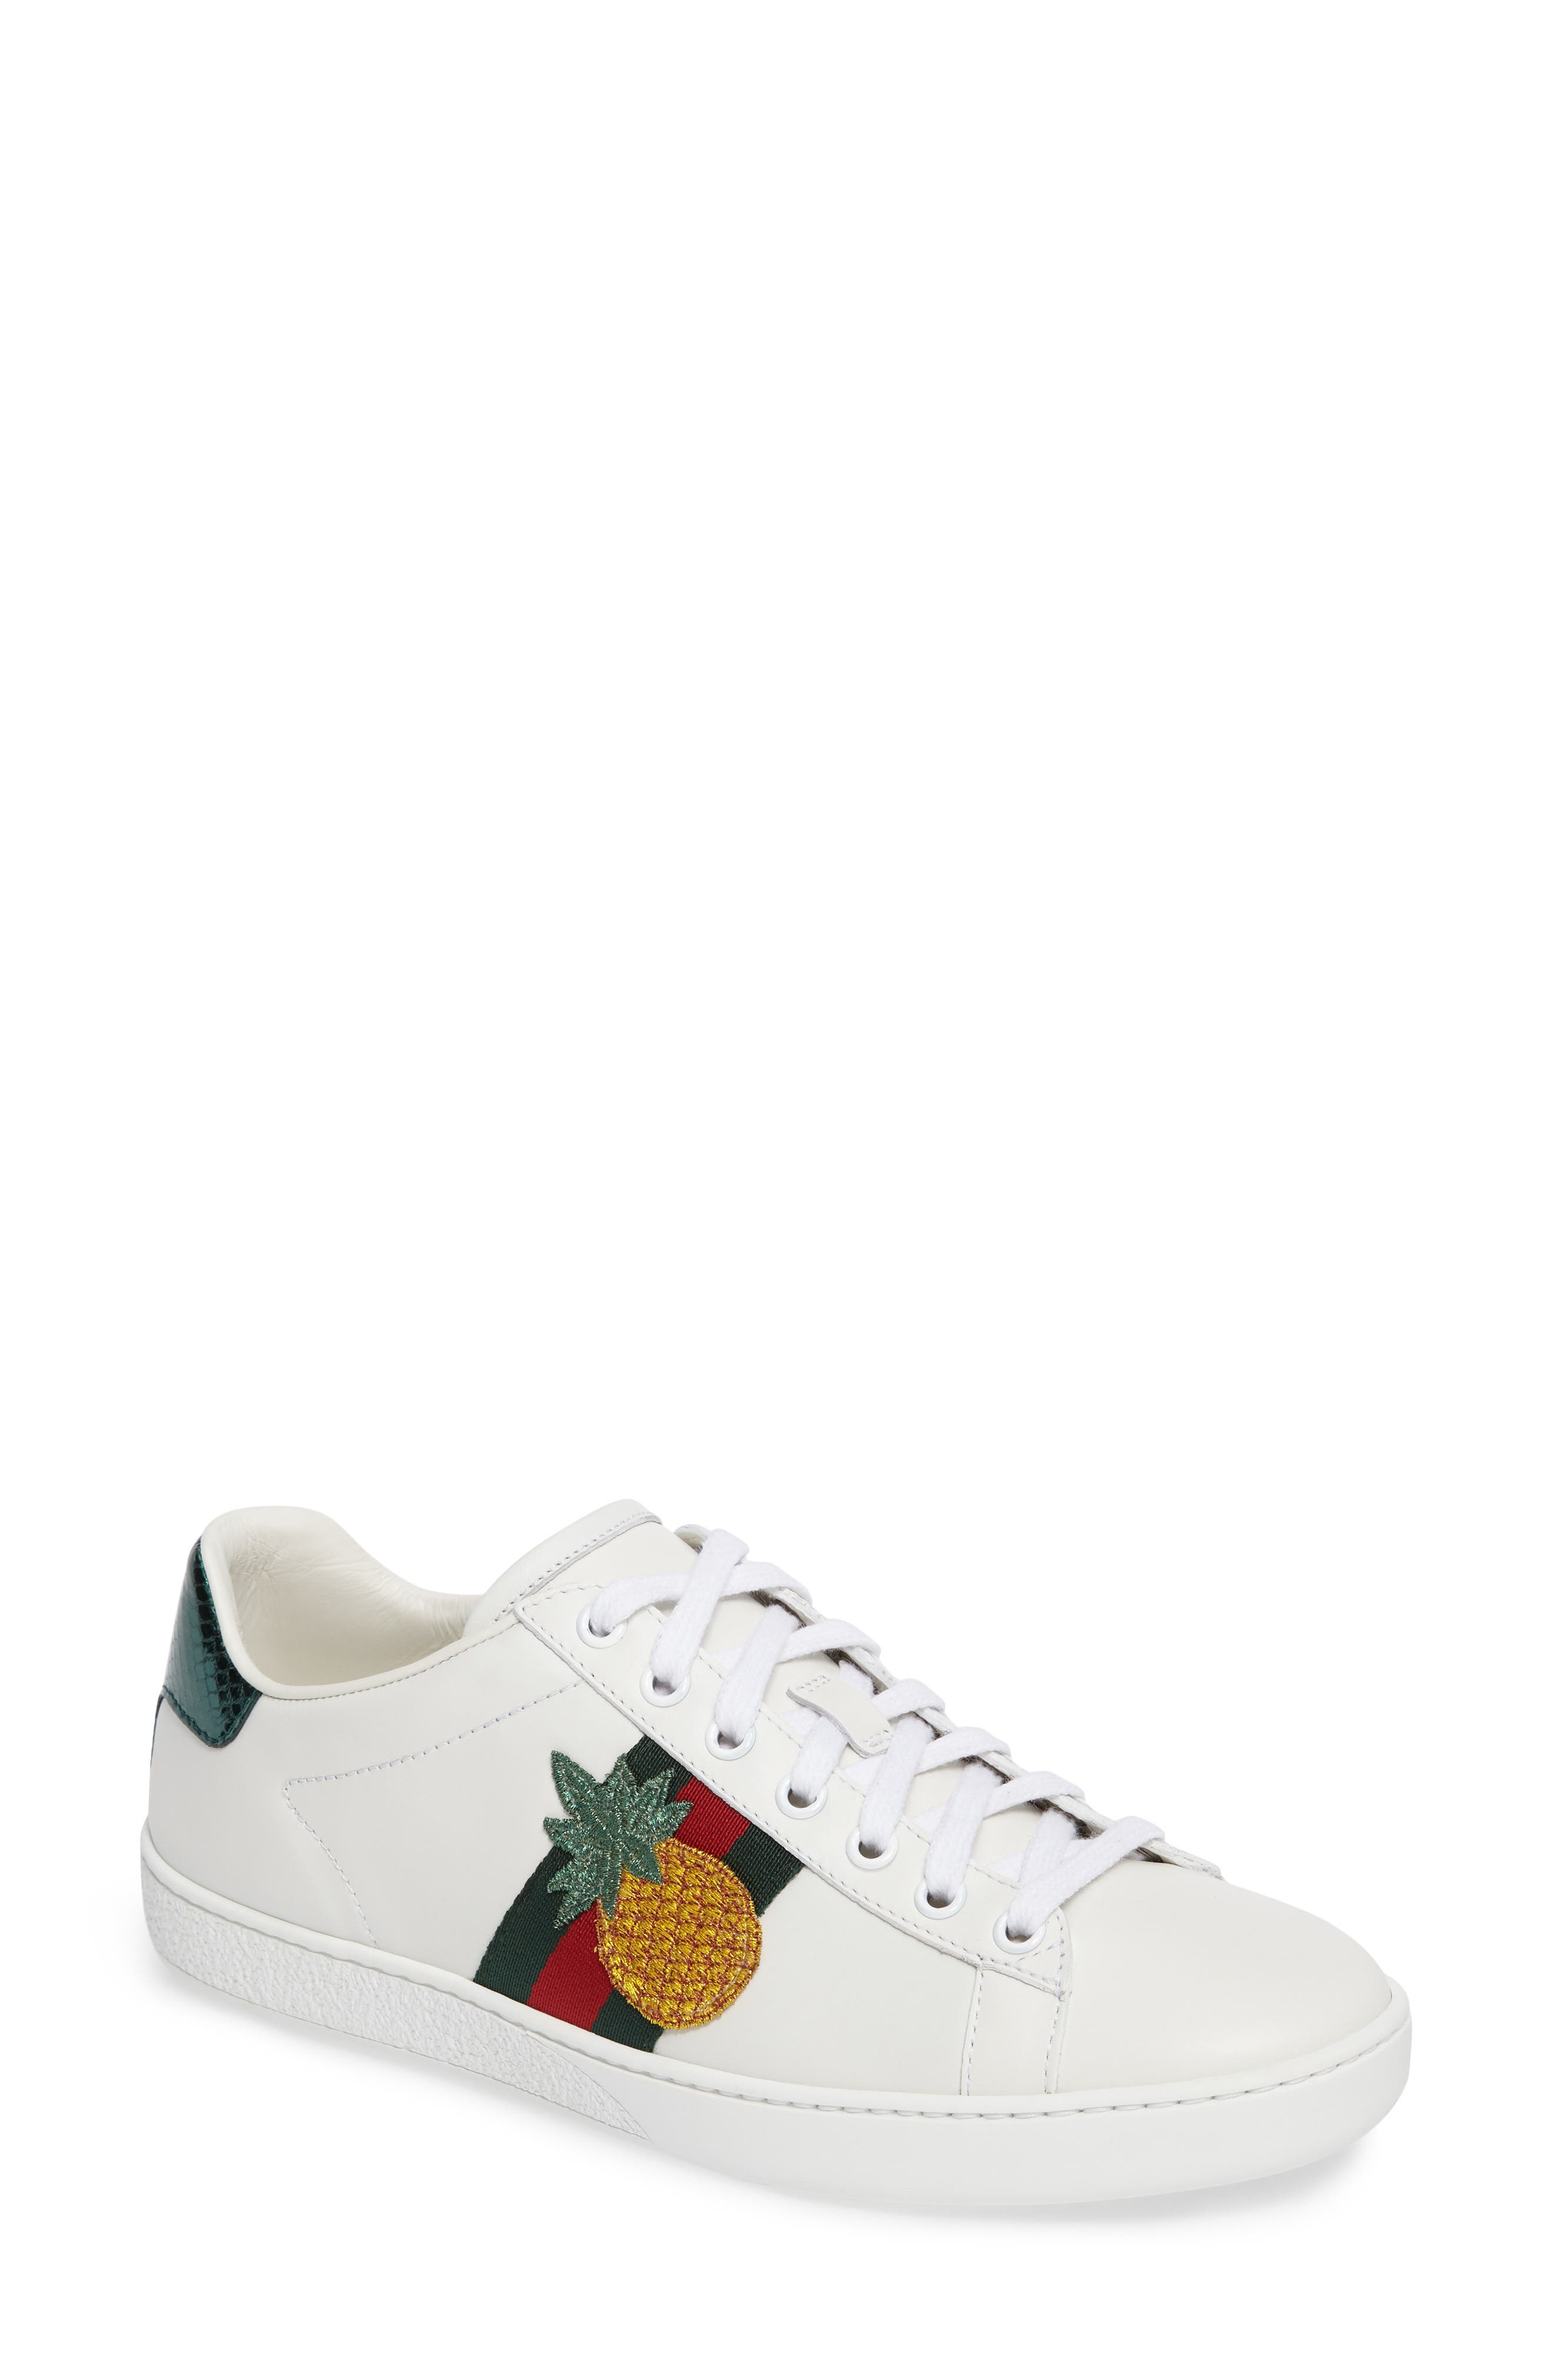 Alternate Image 1 Selected - Gucci New Ace Pineapple Sneaker (Women)